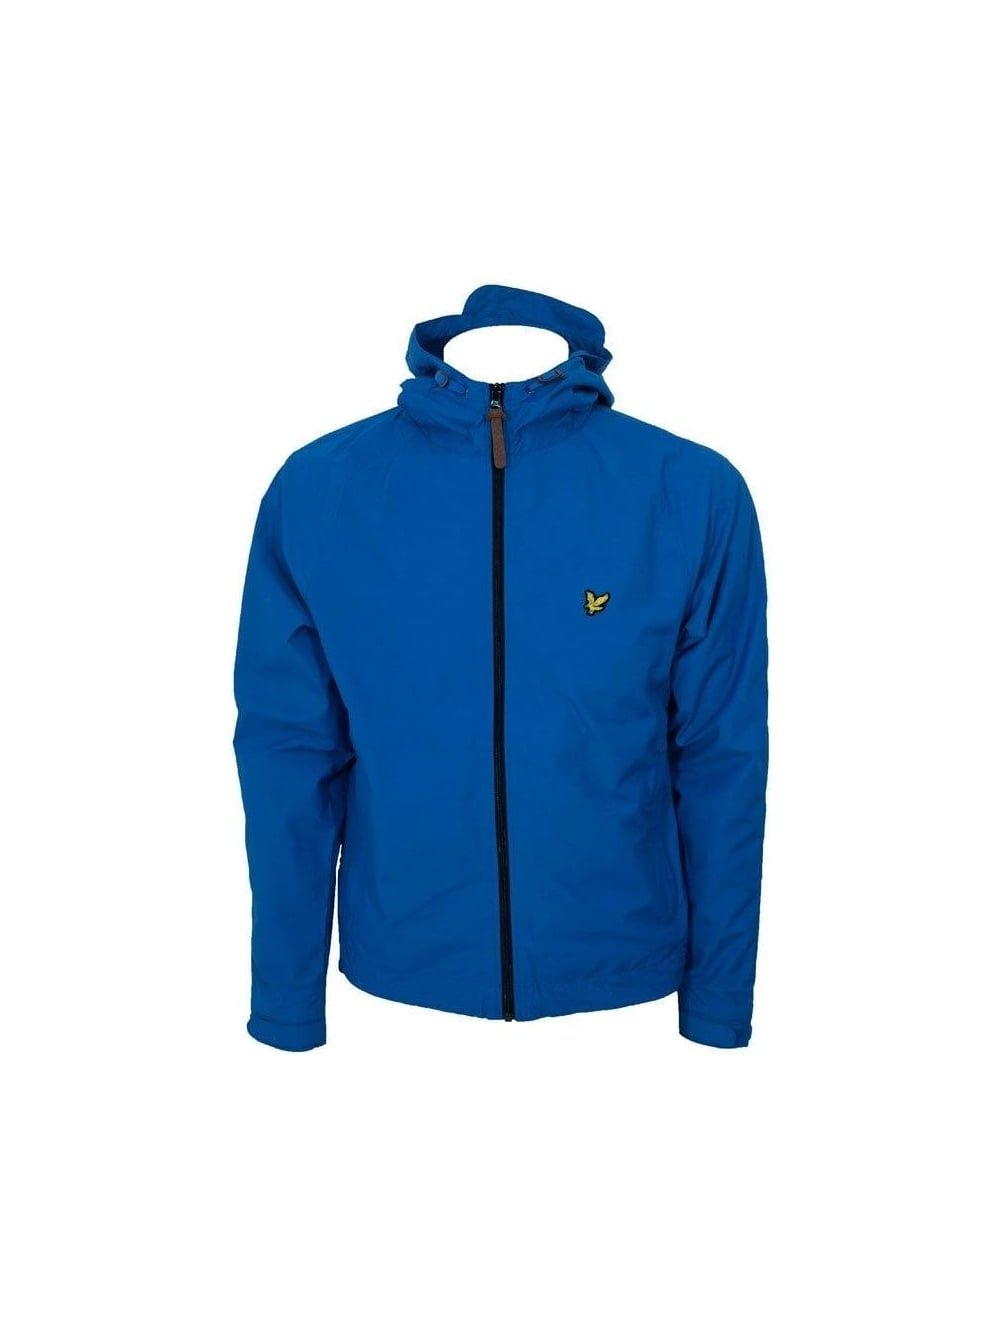 lyle and scott lyle and scott shell zip hooded jacket. Black Bedroom Furniture Sets. Home Design Ideas